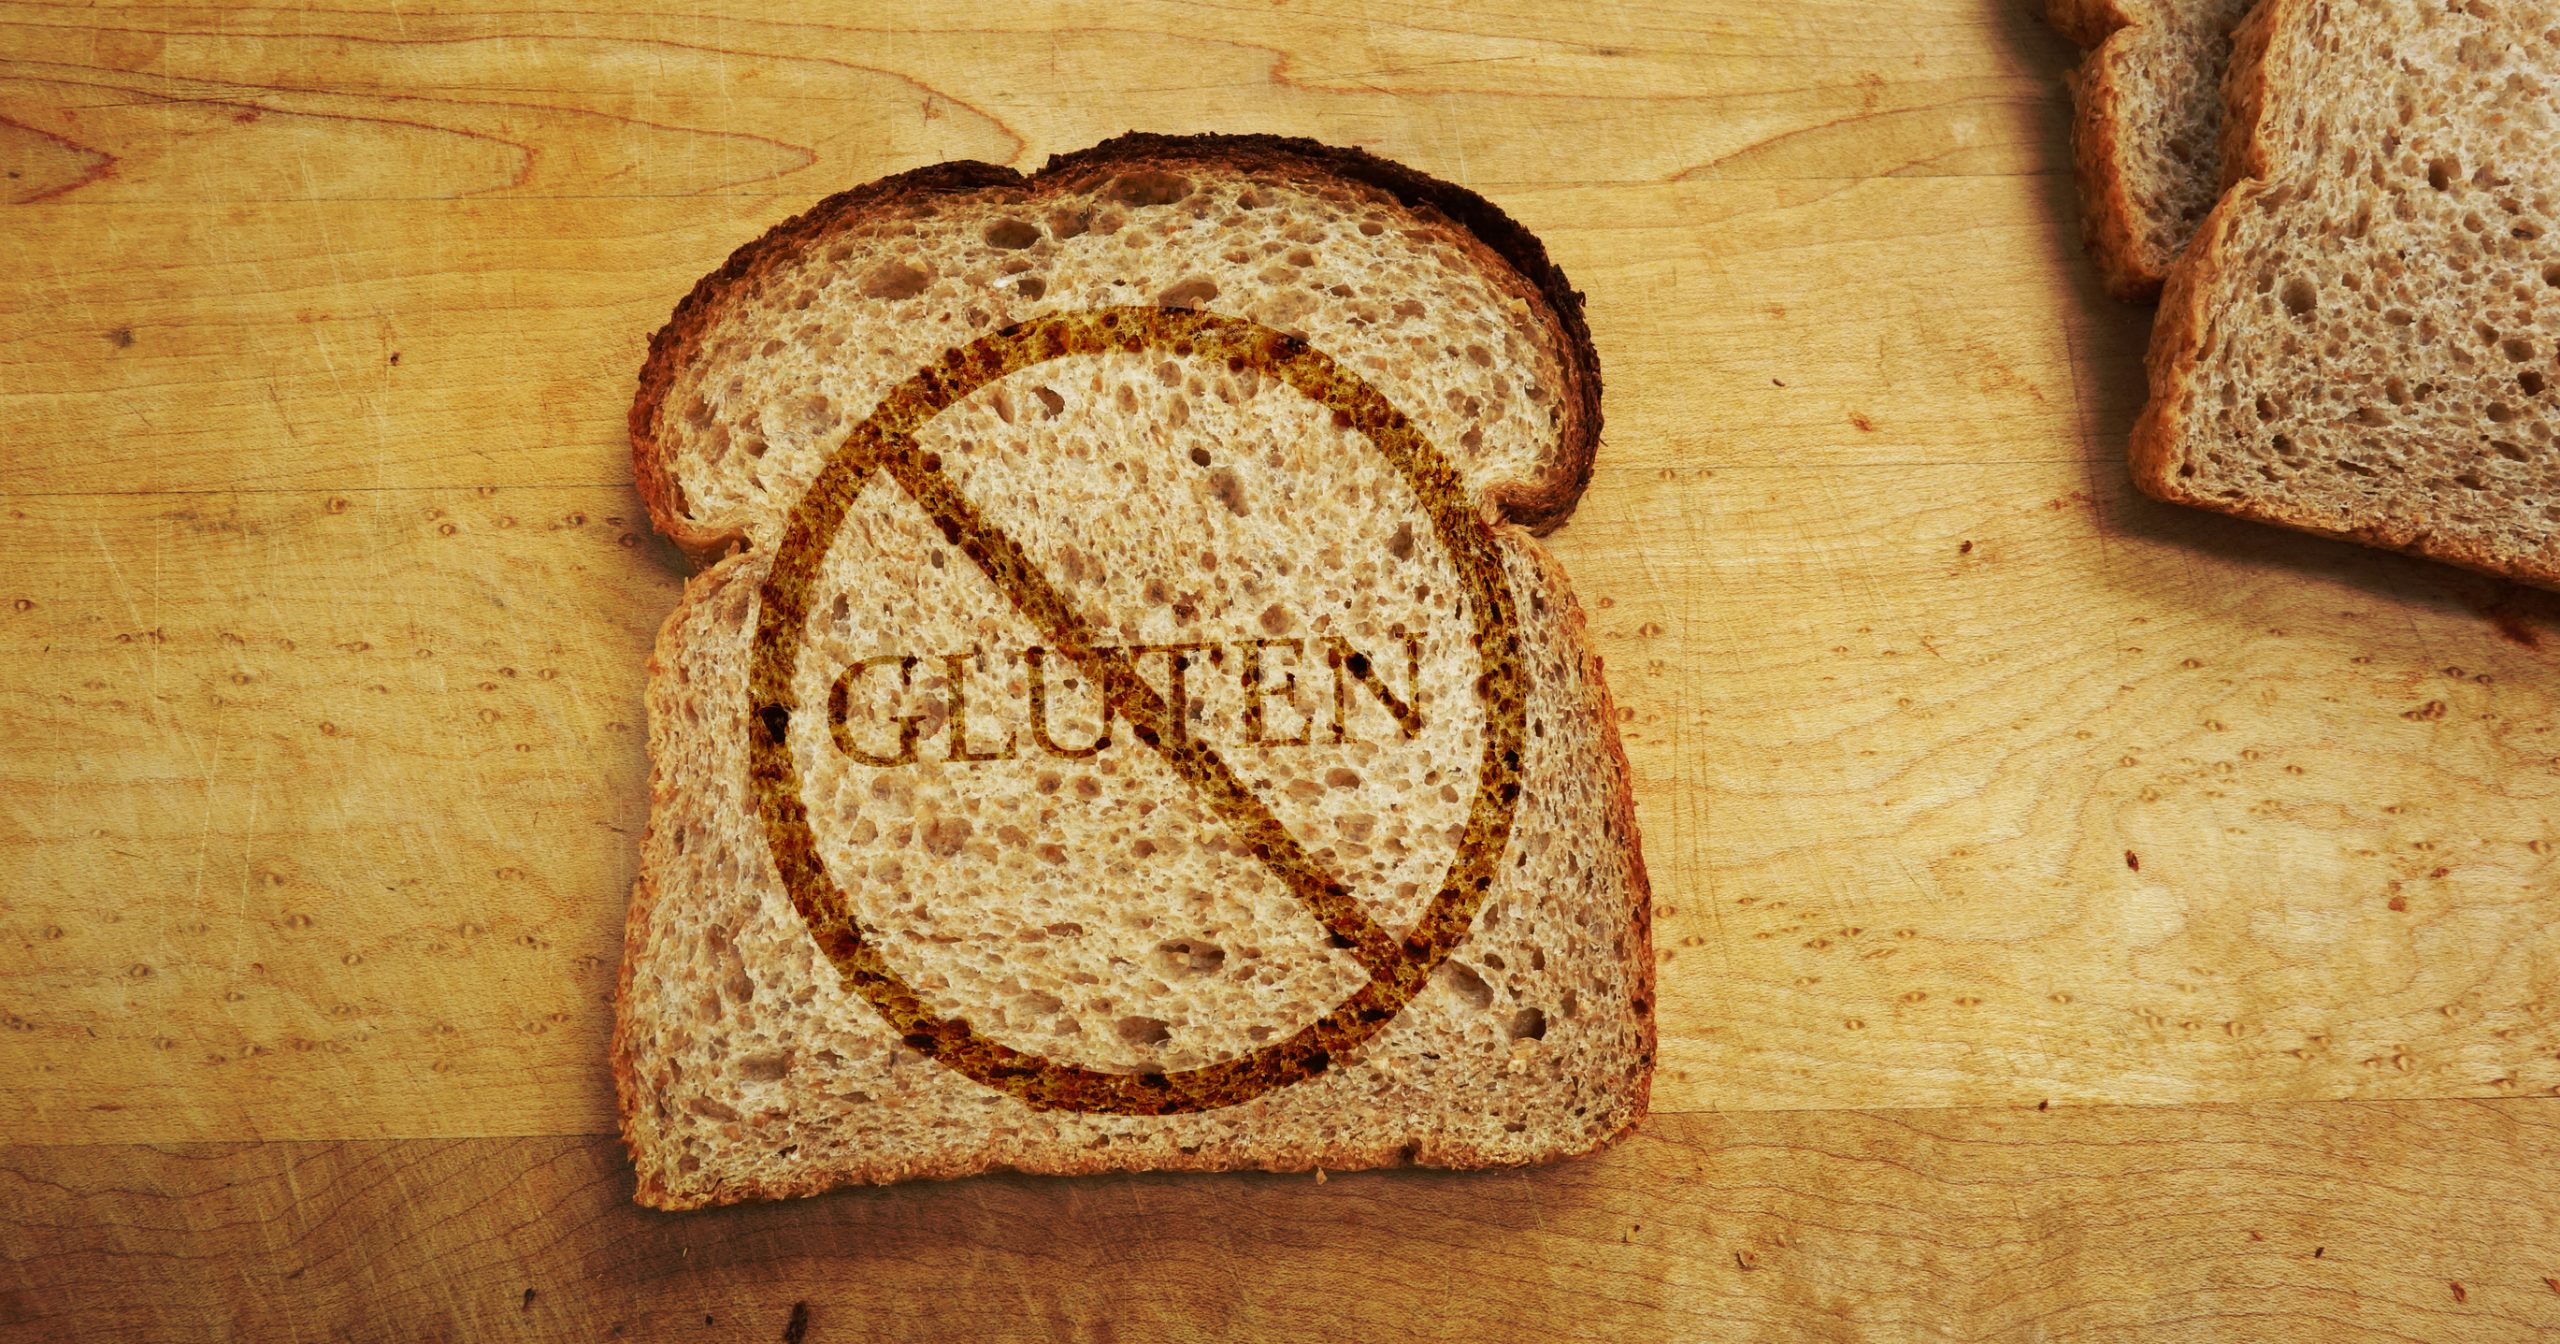 Trials begin for a cure to celiac disease